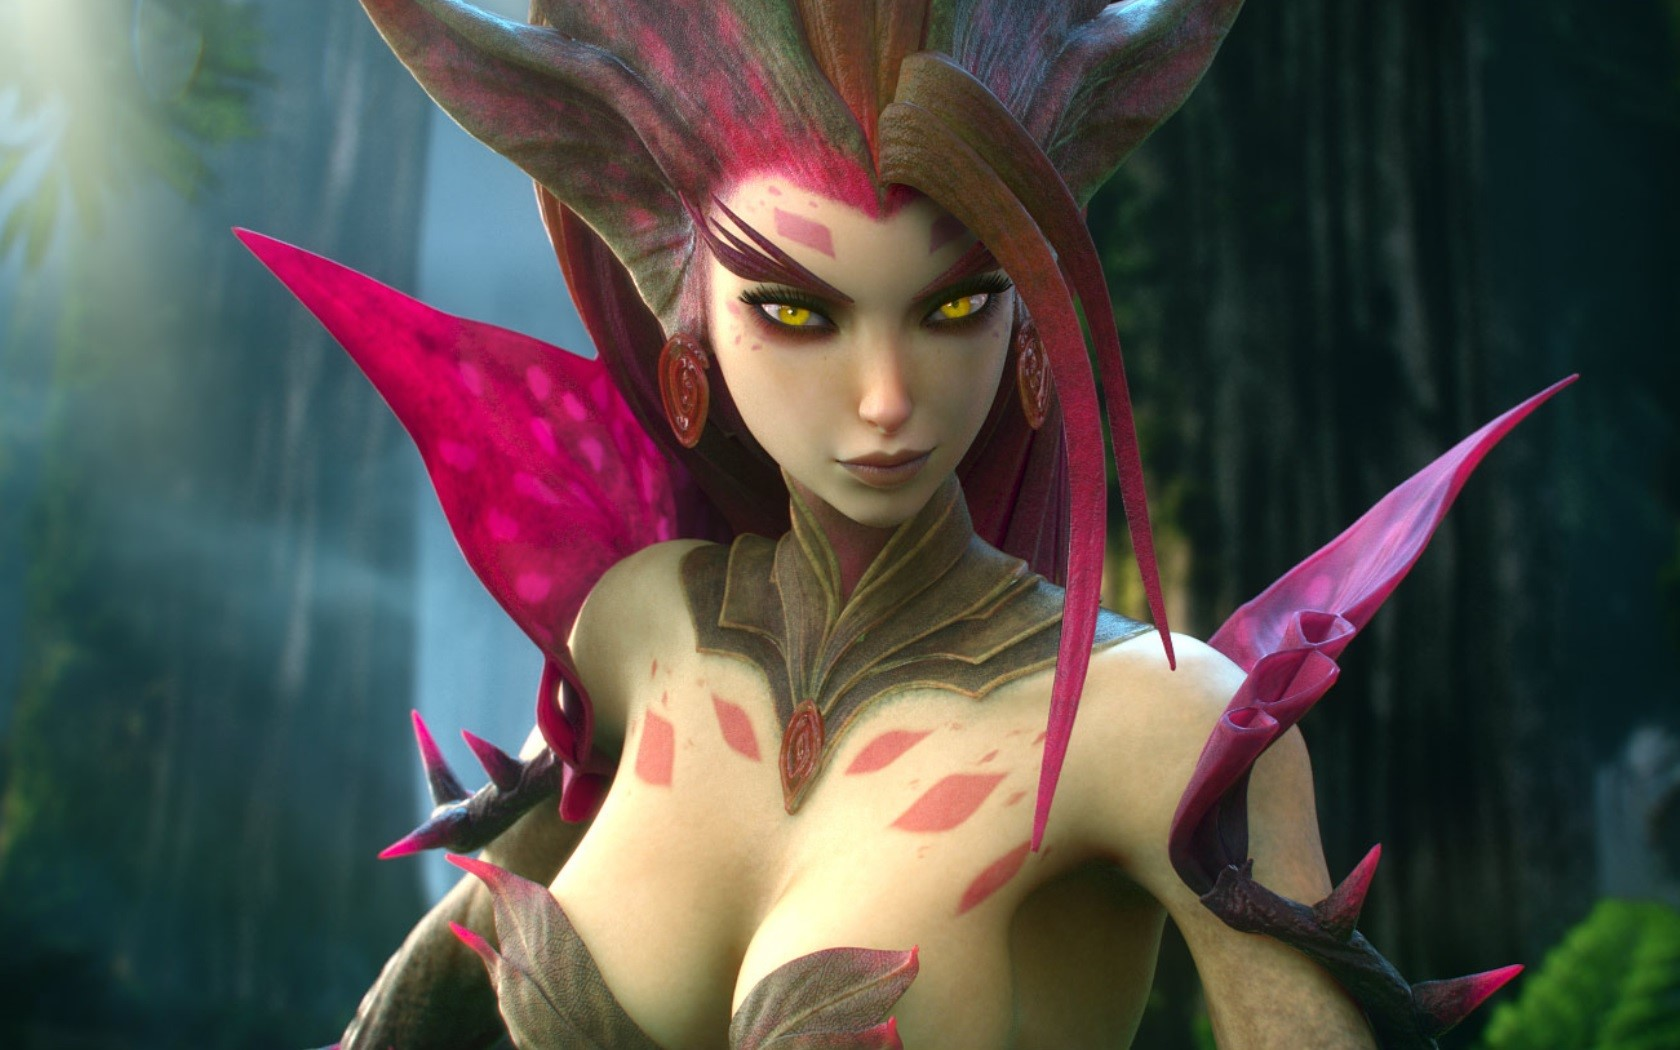 Wallpaper Zyra from League of Legends